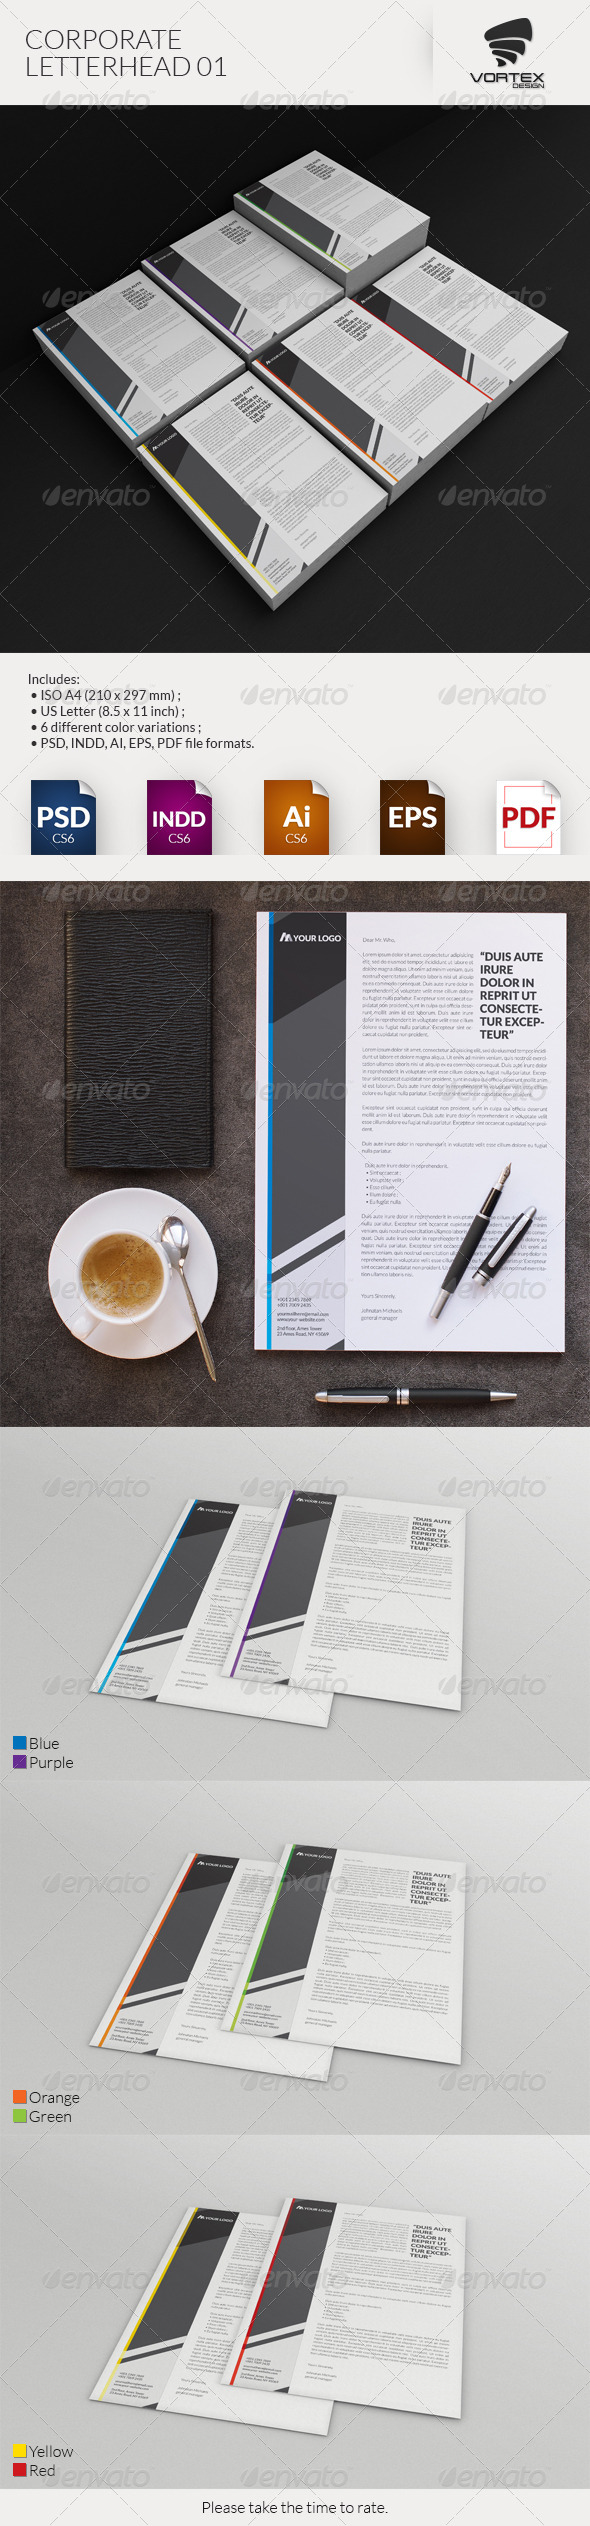 GraphicRiver Corporate Letterhead 01 8296903